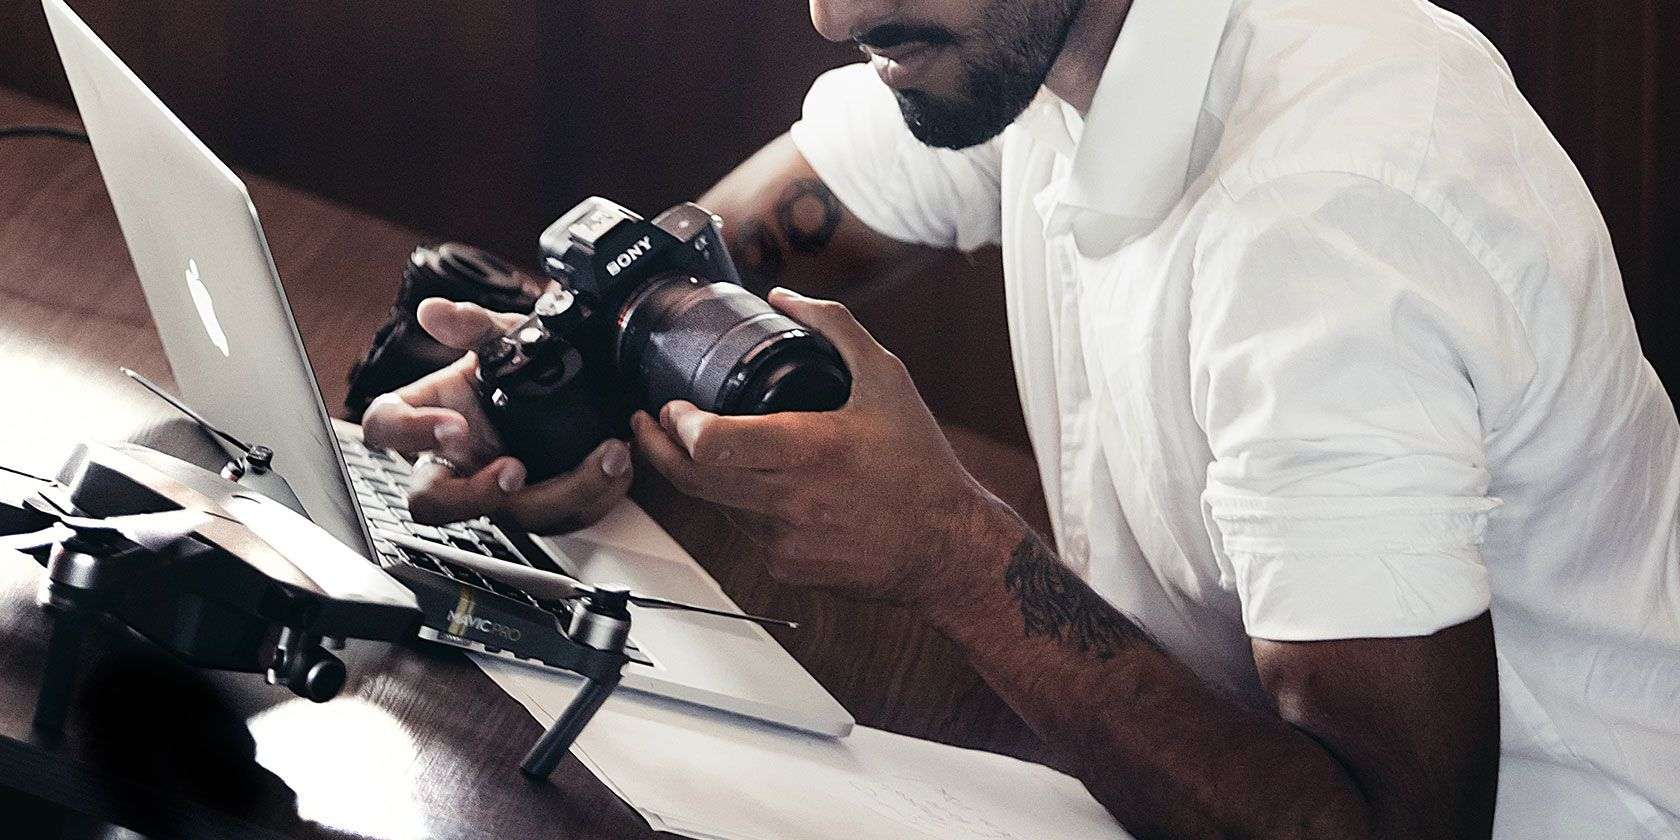 How to Improve Your Photography Skills Using Reddit